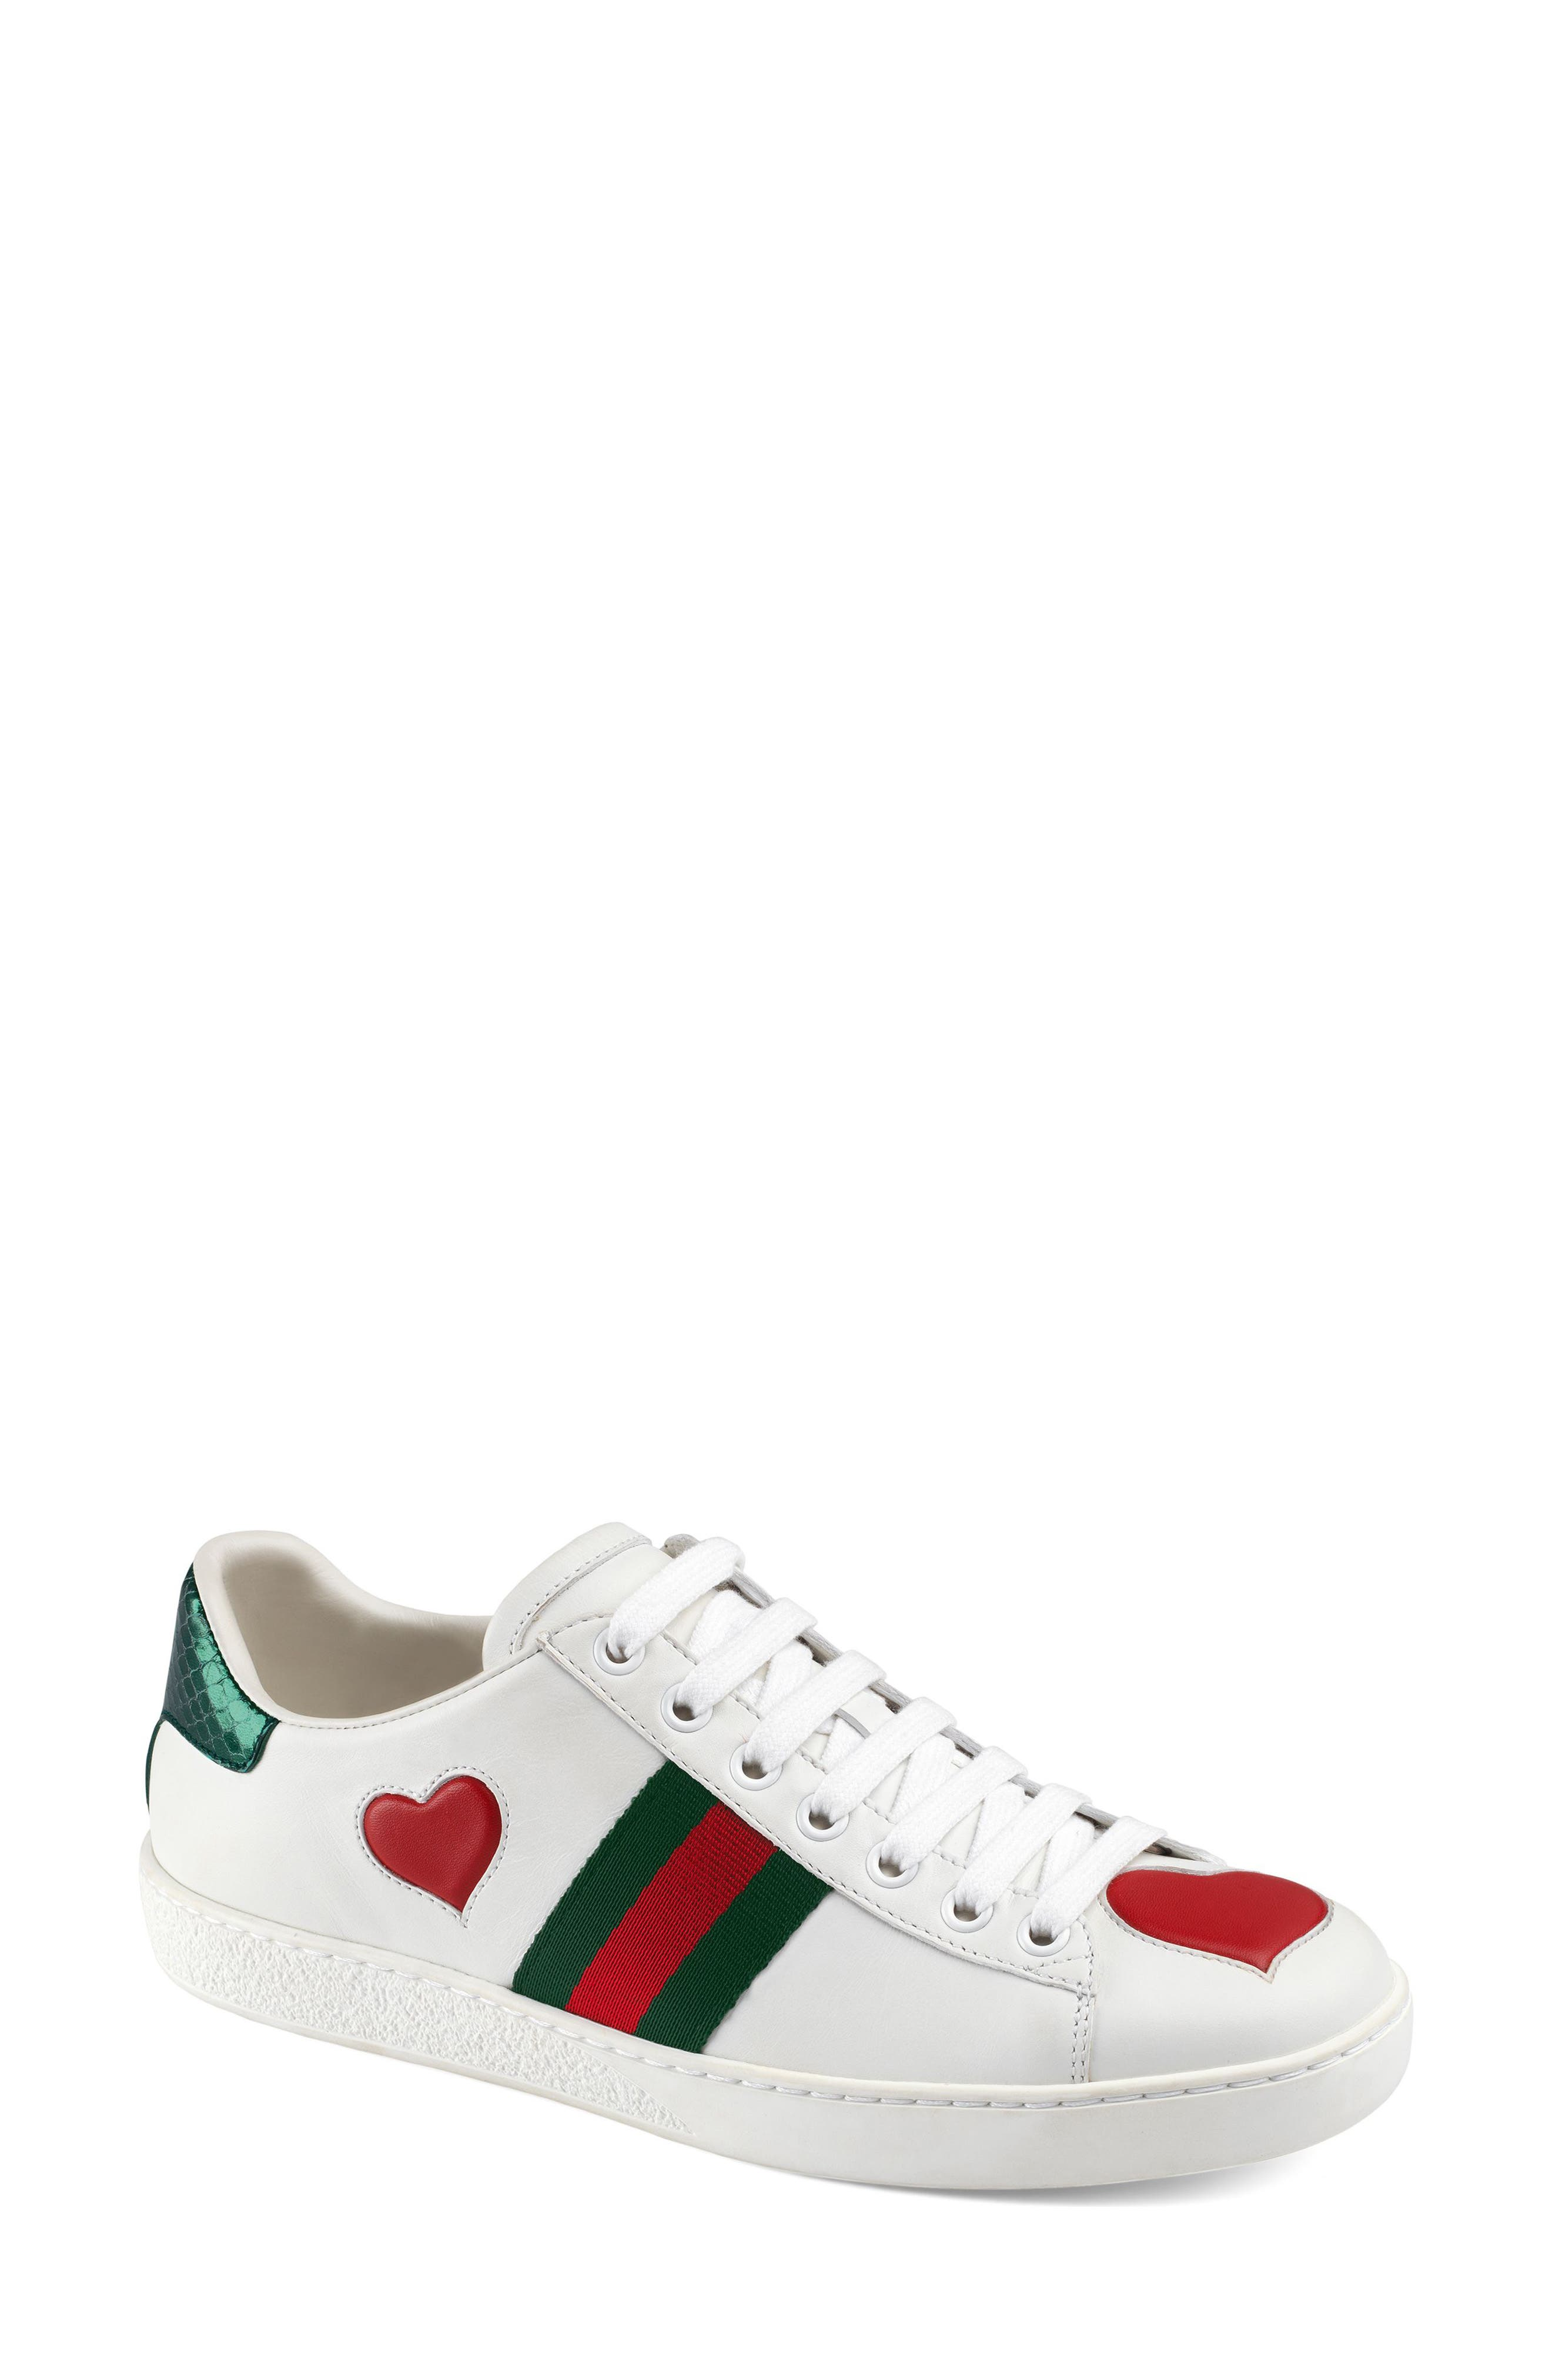 New Ace Heart Sneaker,                             Main thumbnail 1, color,                             WHITE